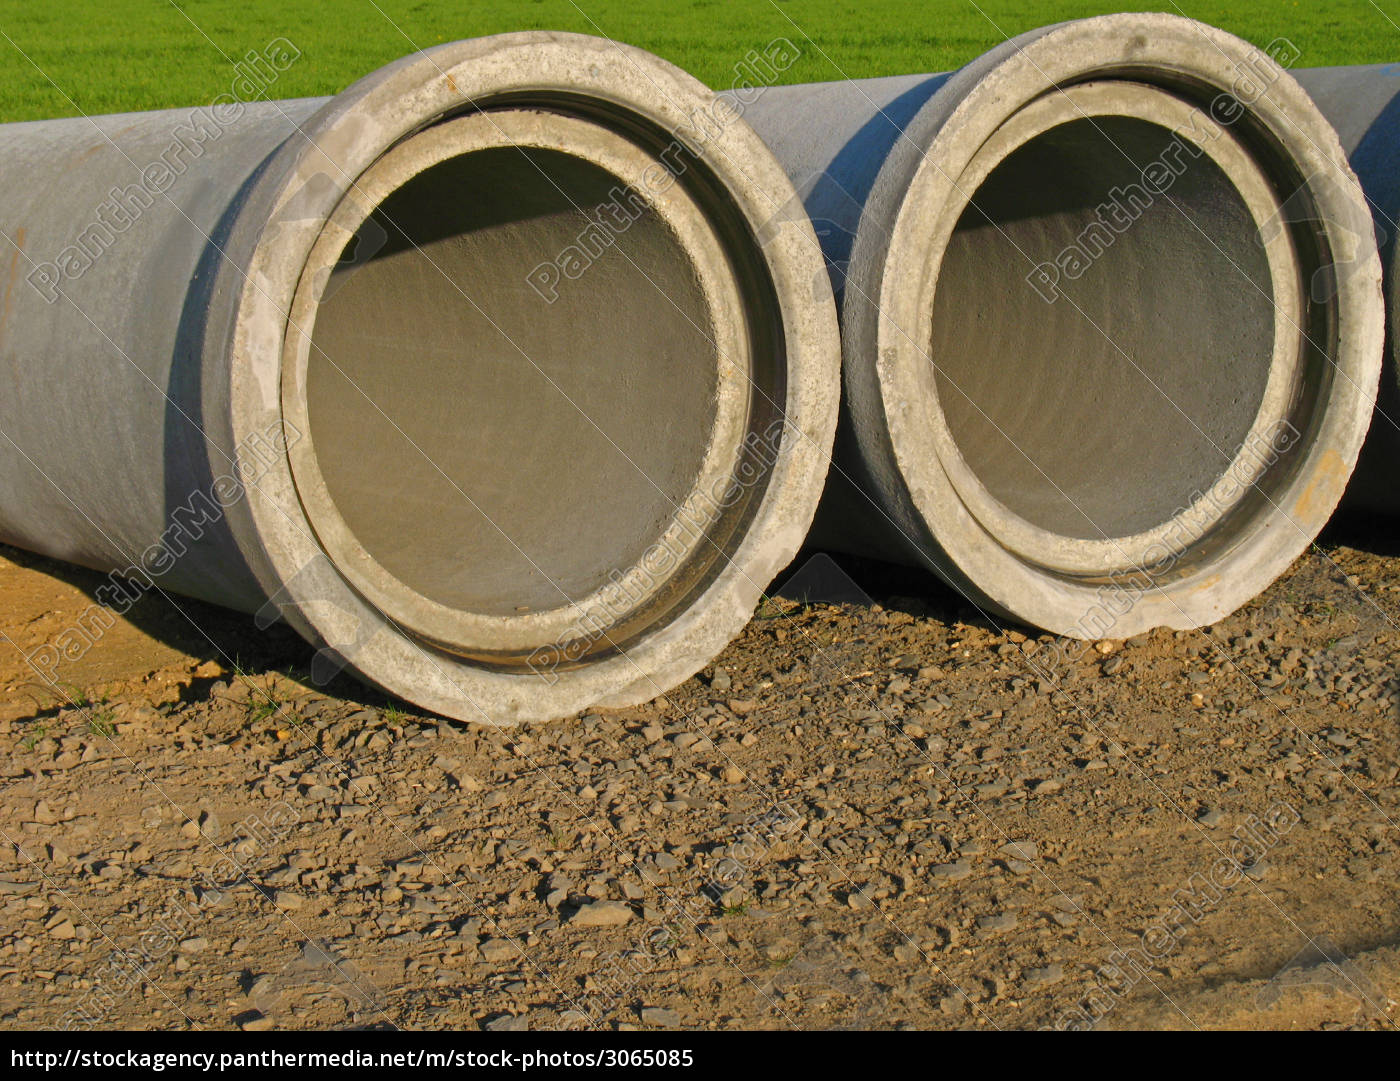 sewer, pipes - 3065085